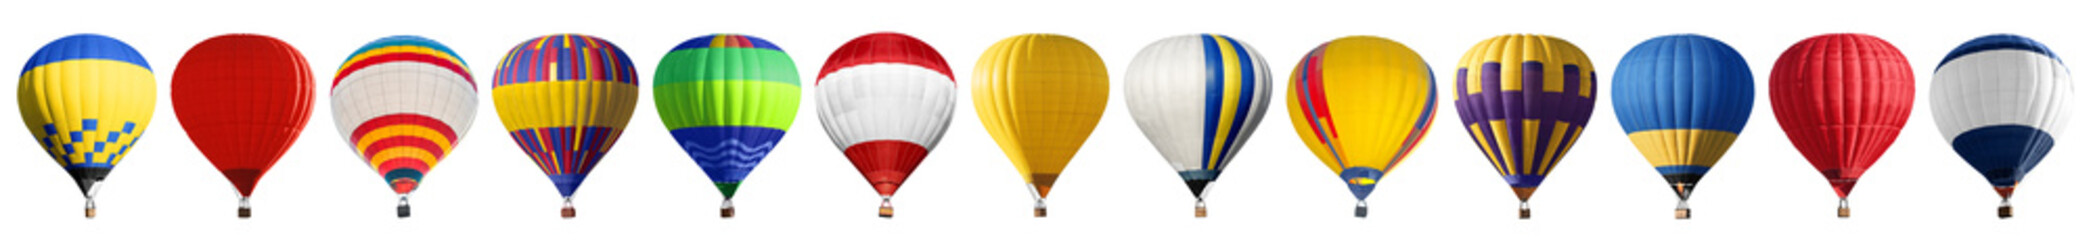 Photo sur Aluminium Montgolfière / Dirigeable Set of bright colorful hot air balloons on white background